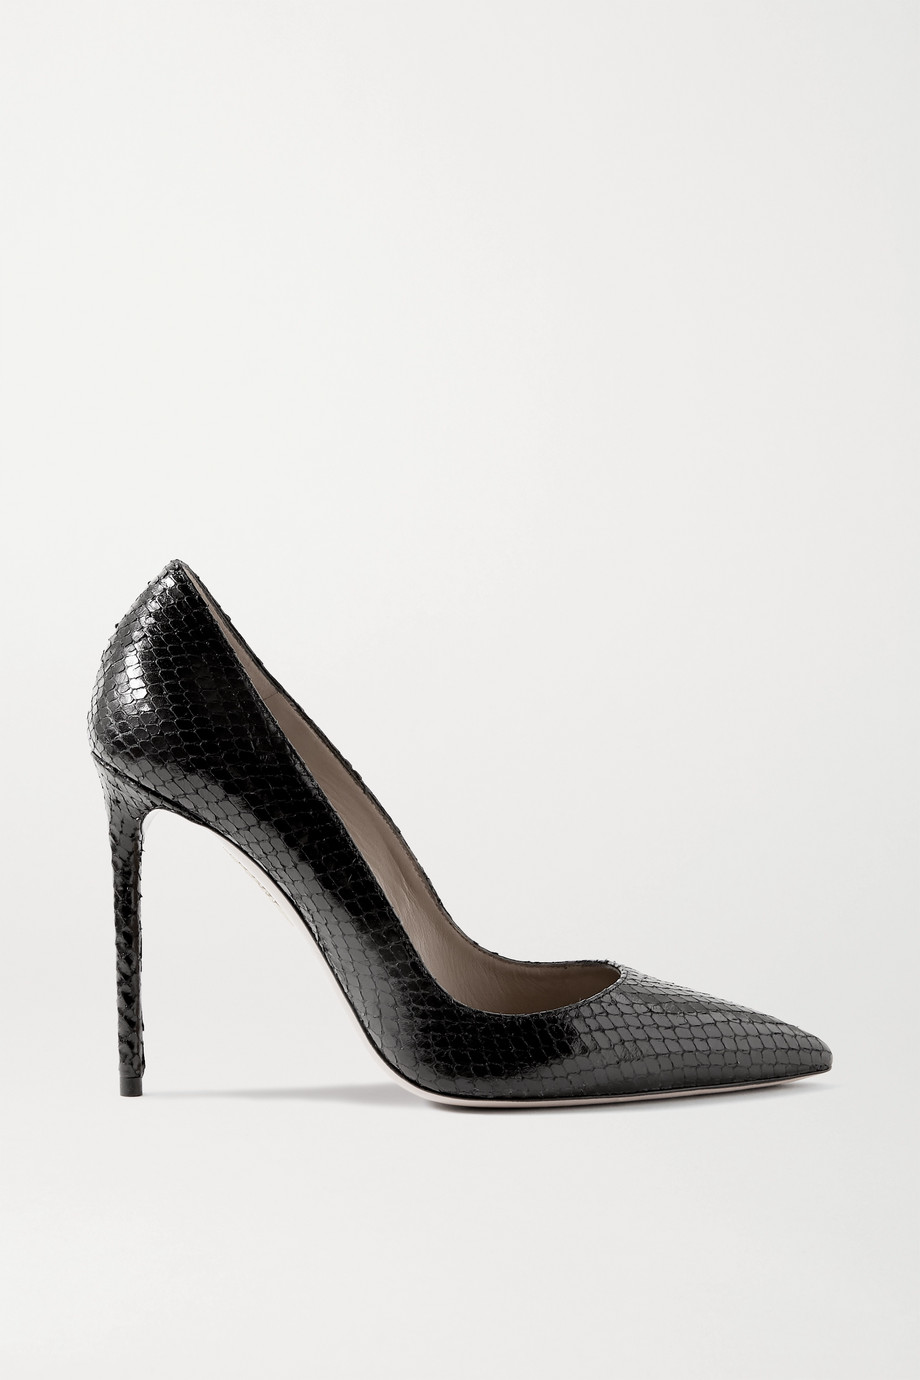 Aquazzura Purist 105 snake-effect leather pumps